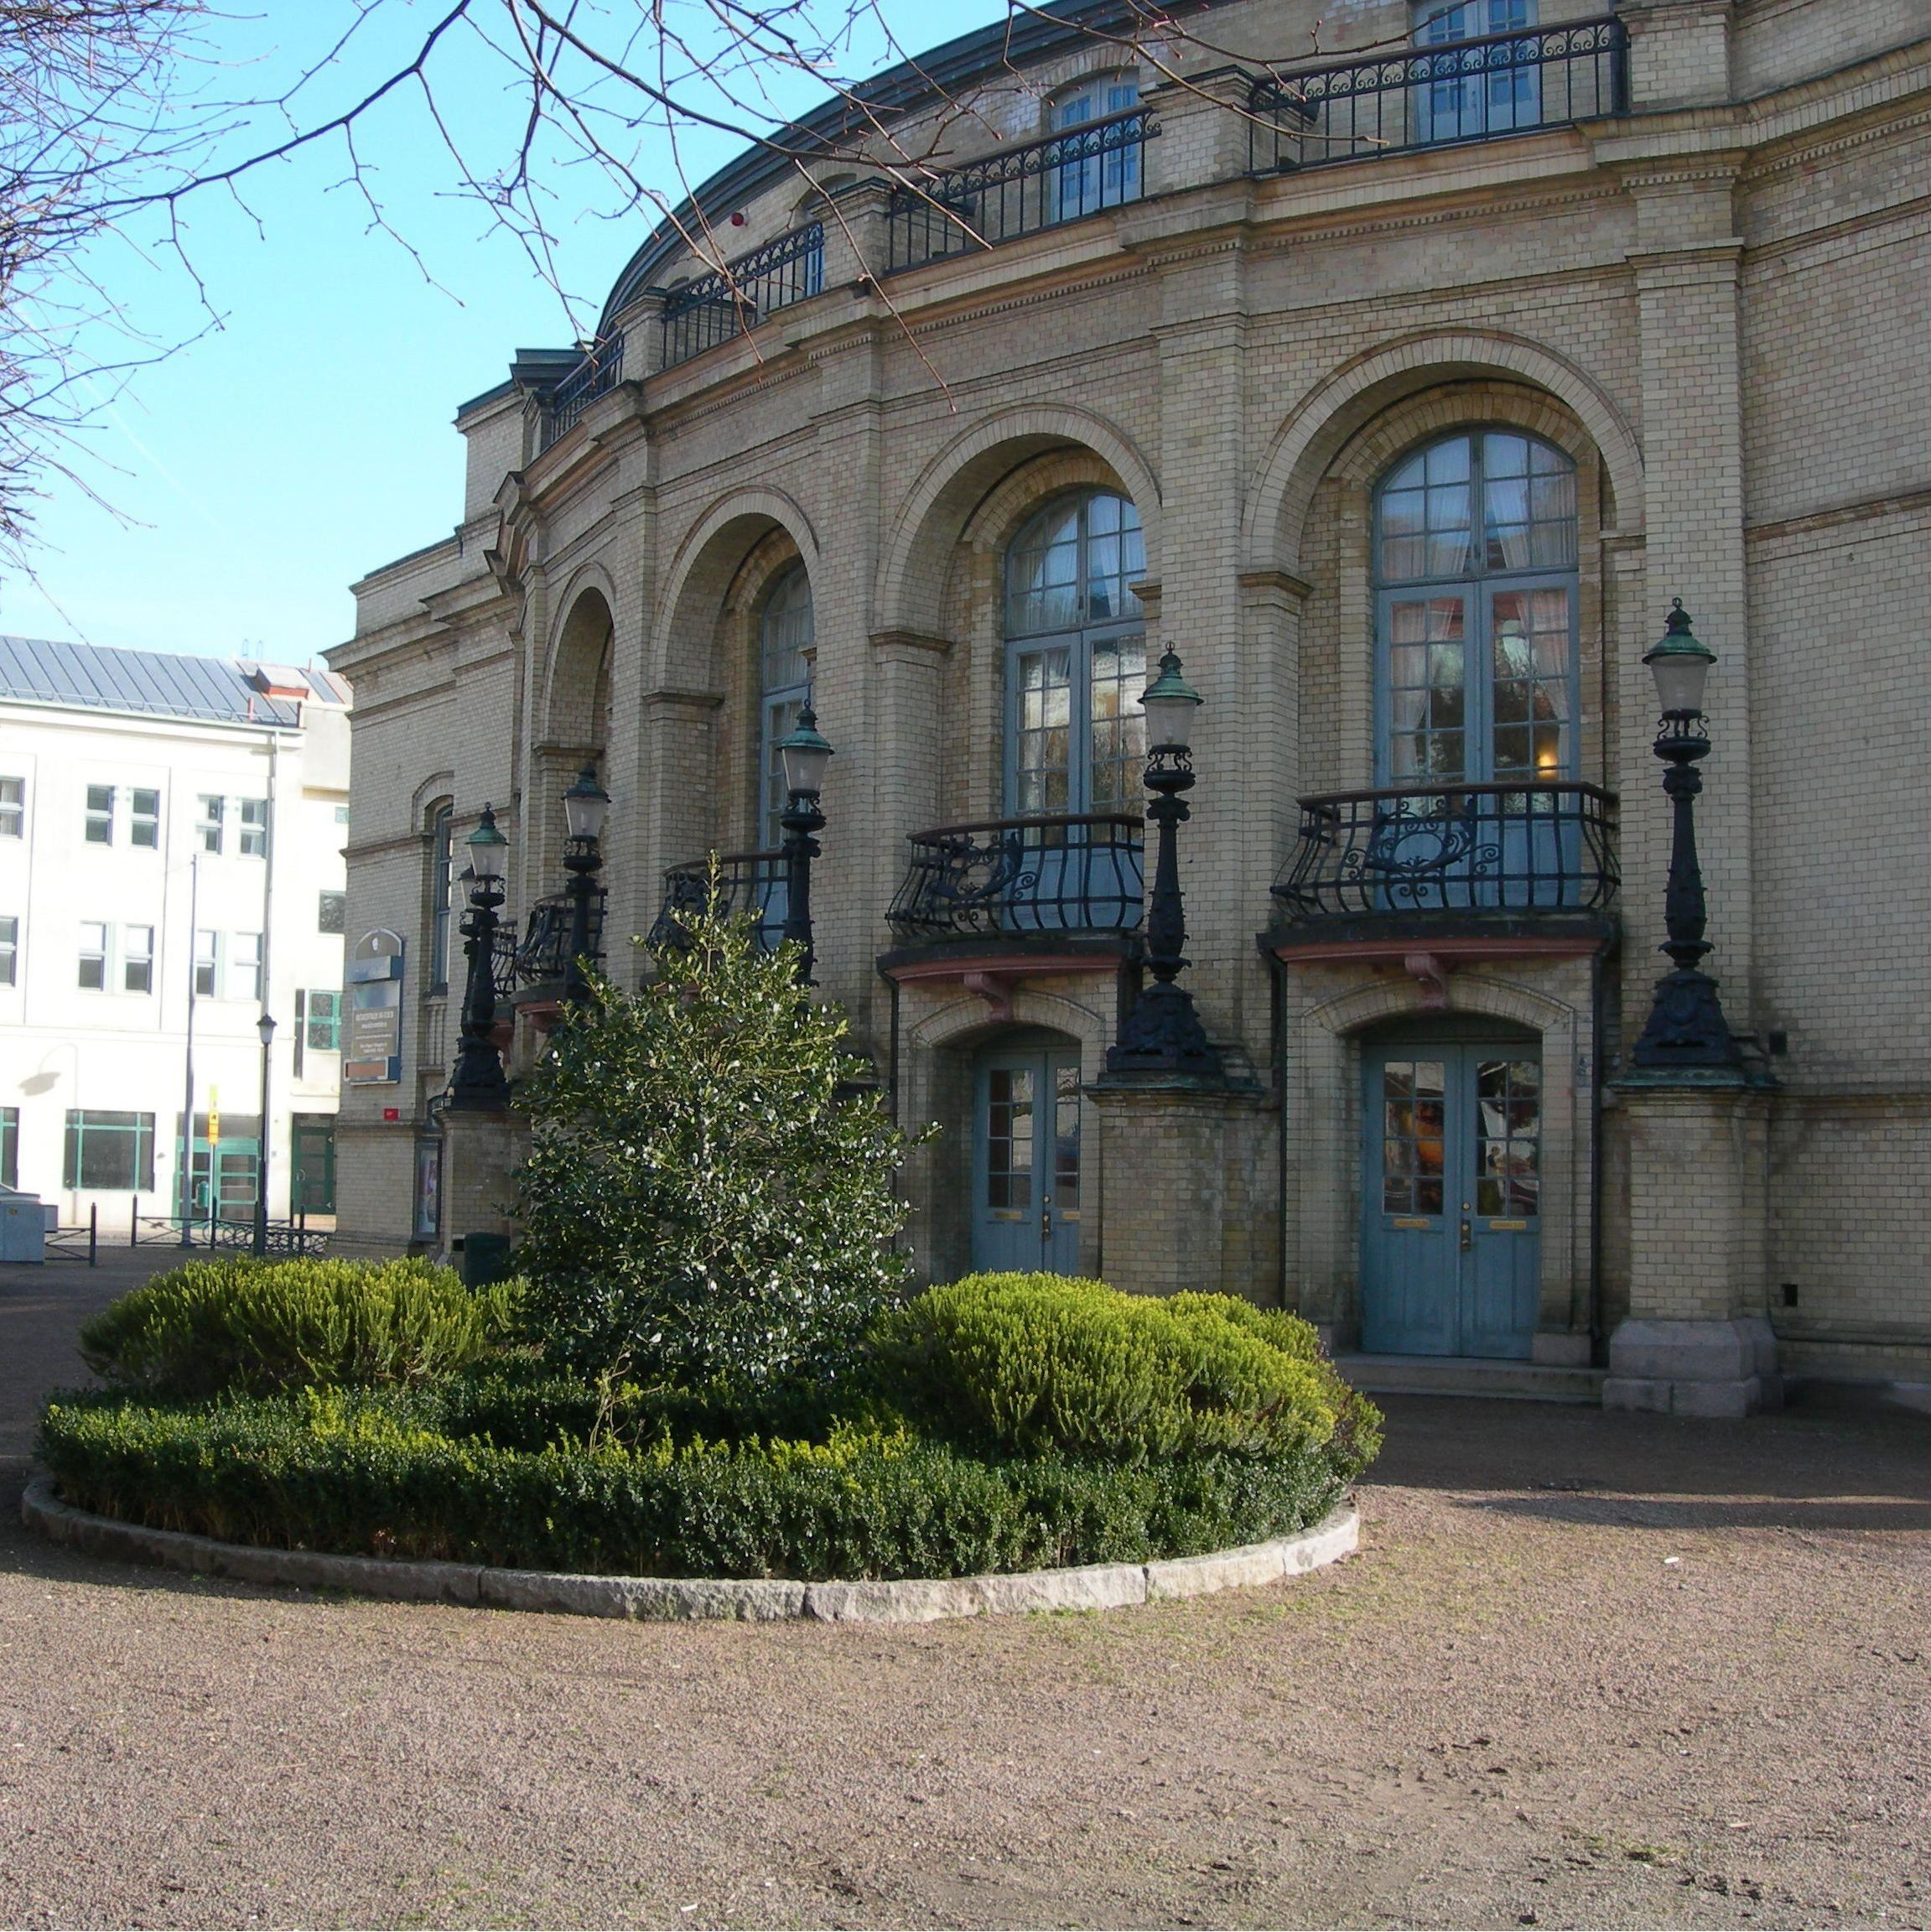 The Landskrona Theatre